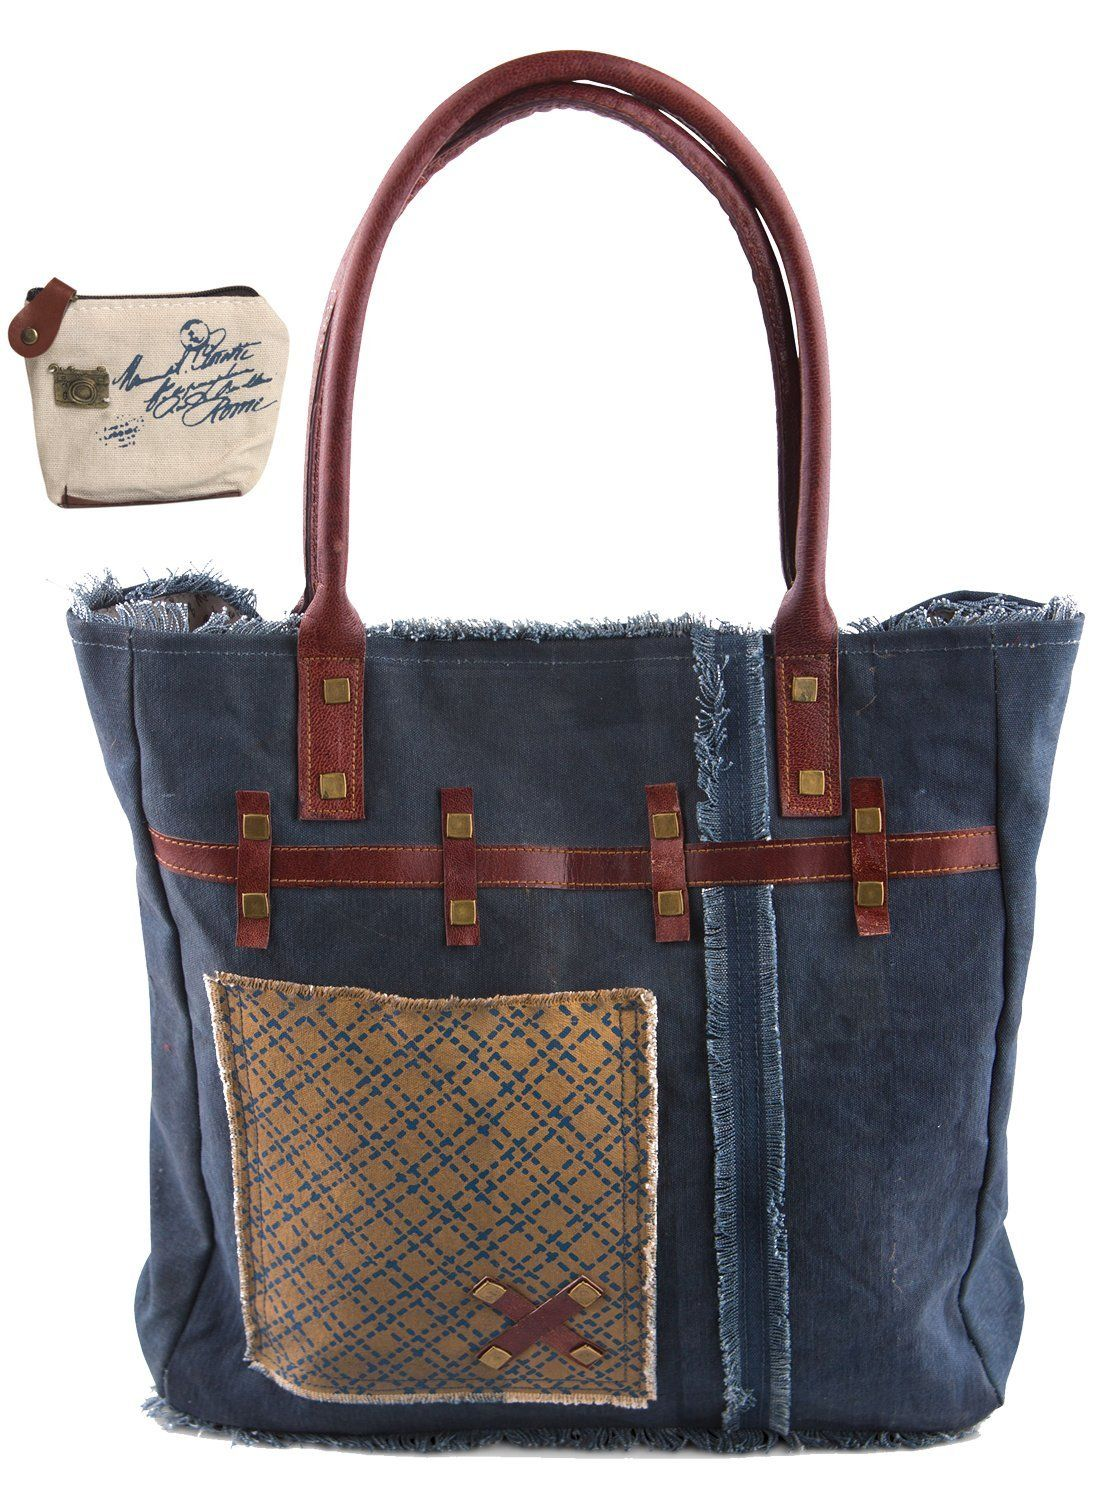 GUESS Women's Kalen Carryall Denim Tote: Handbags: Amazon